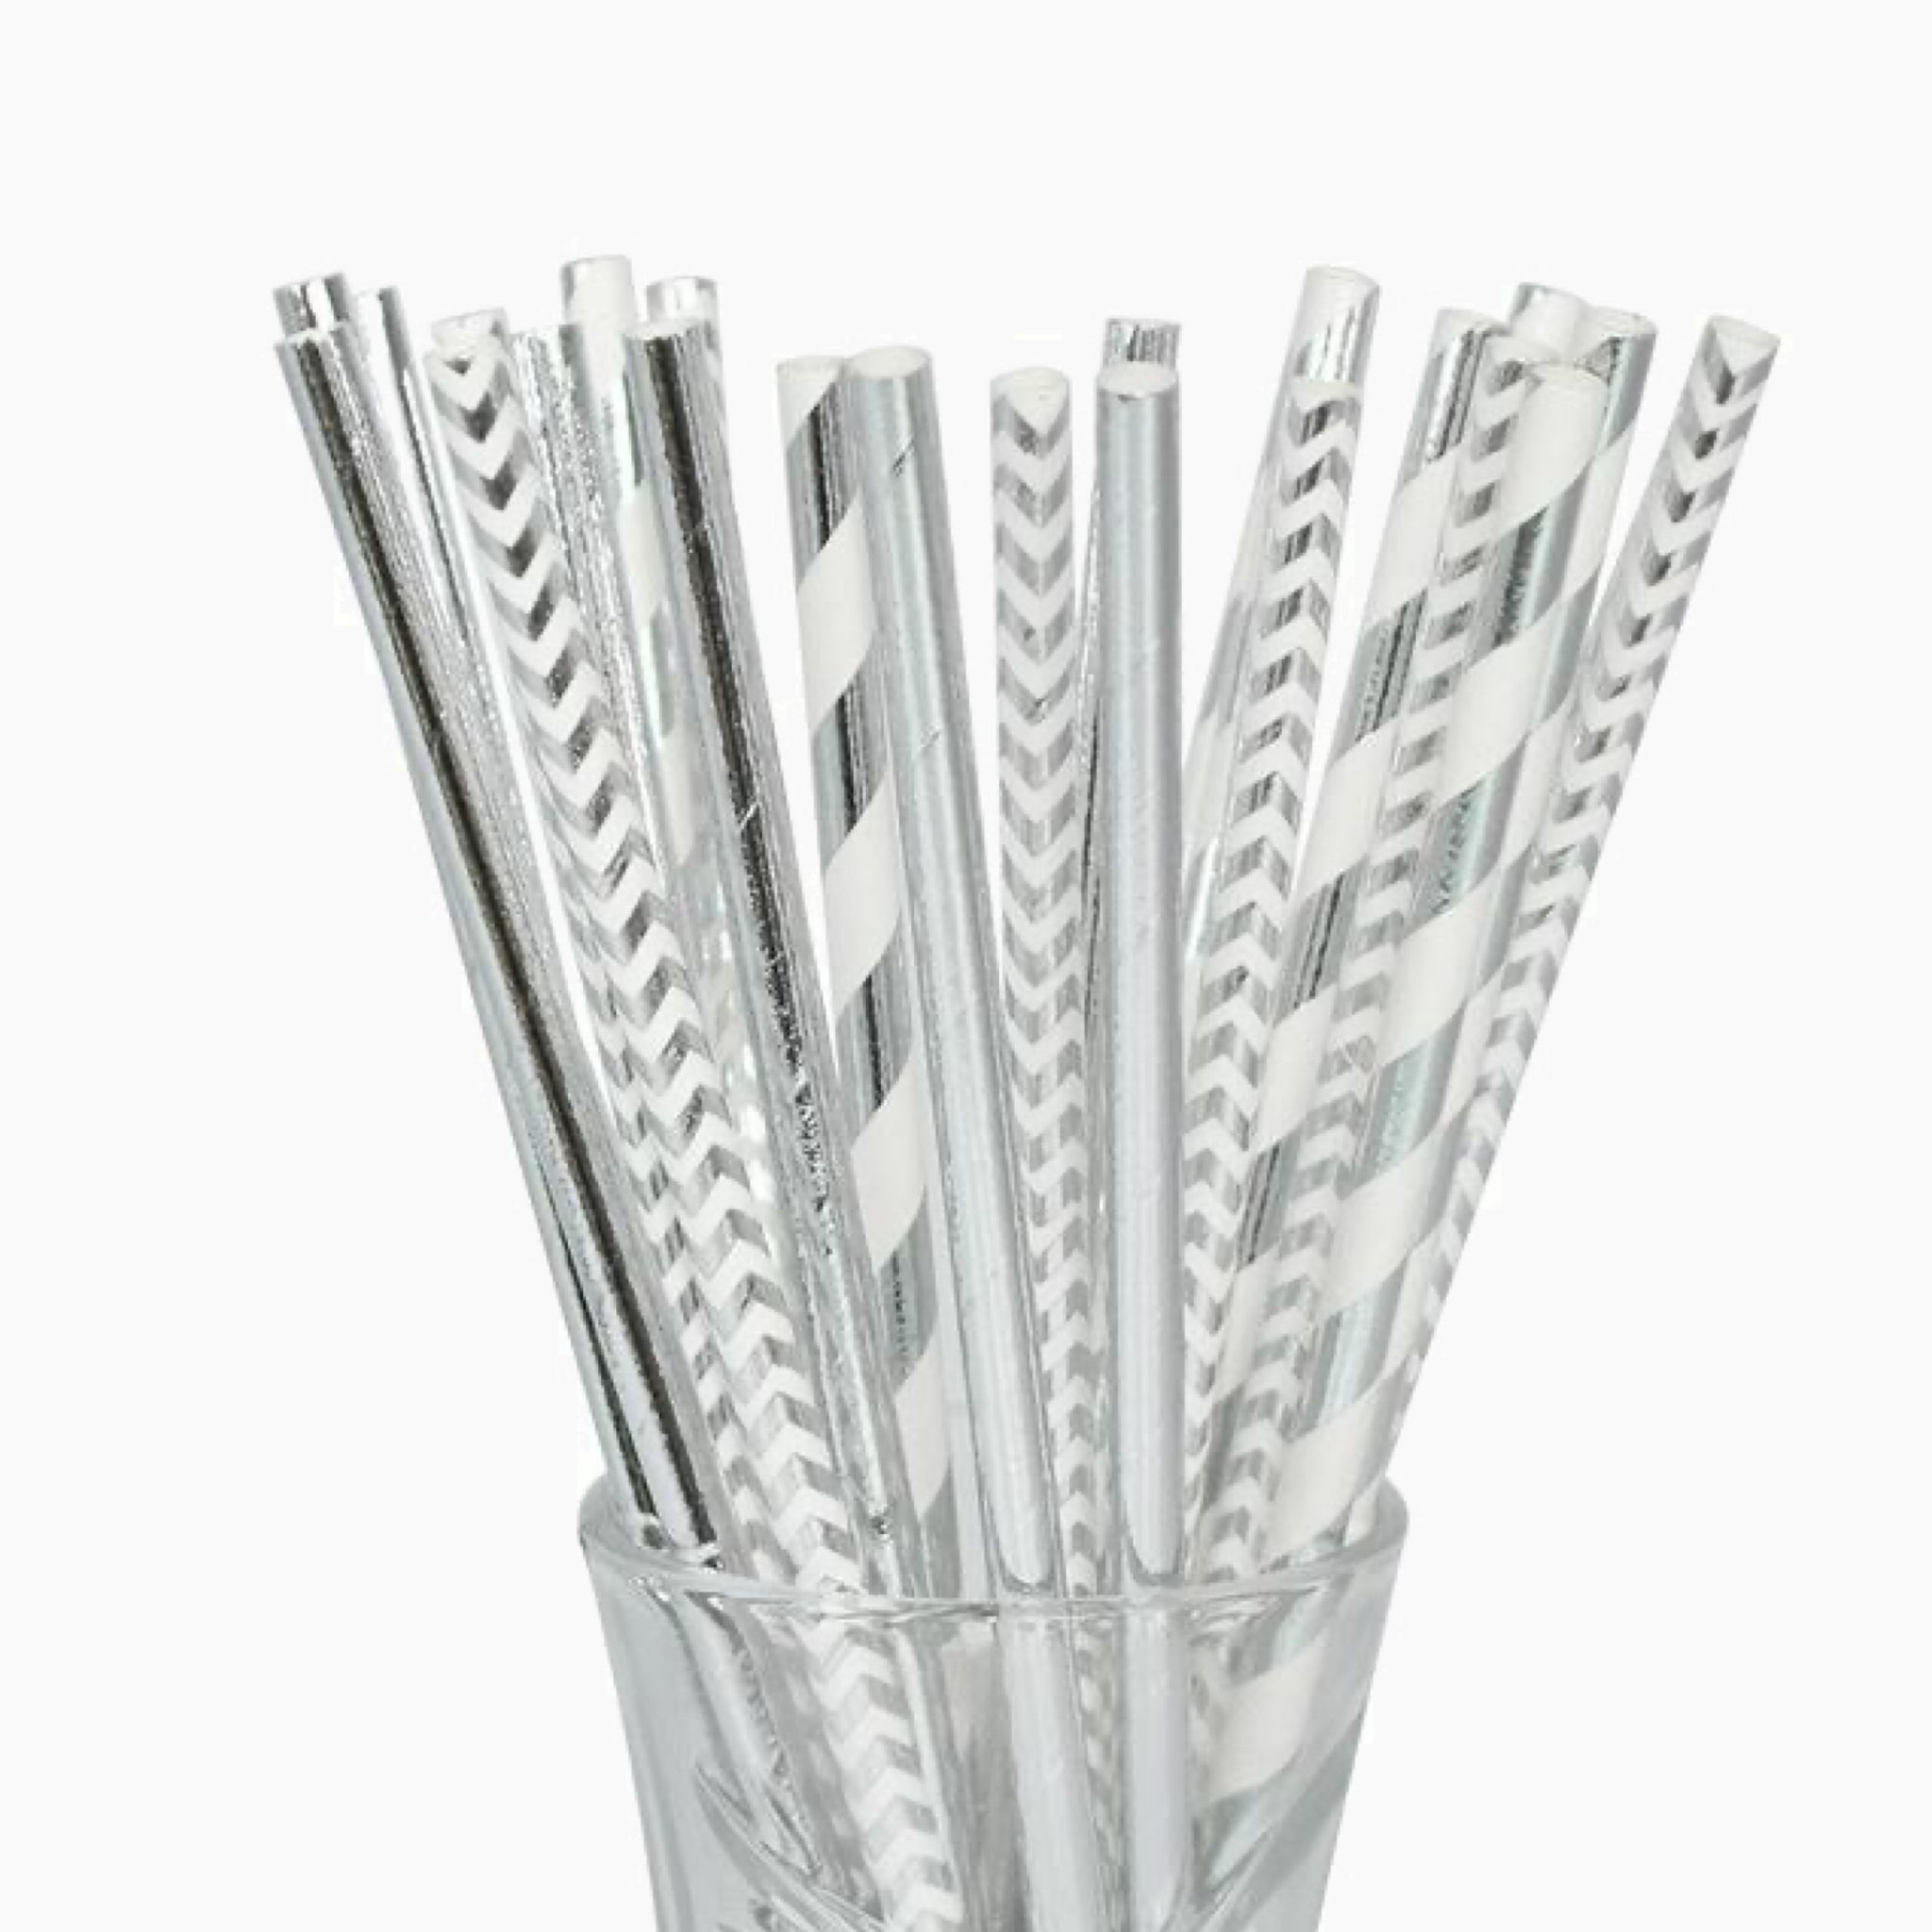 25 Piece Mix Gray / Grey Silver White Paper Straw Stripe Drinking Chevron Straws For Wedding Birthday Party Decoration Baby Shower Supplies Trend